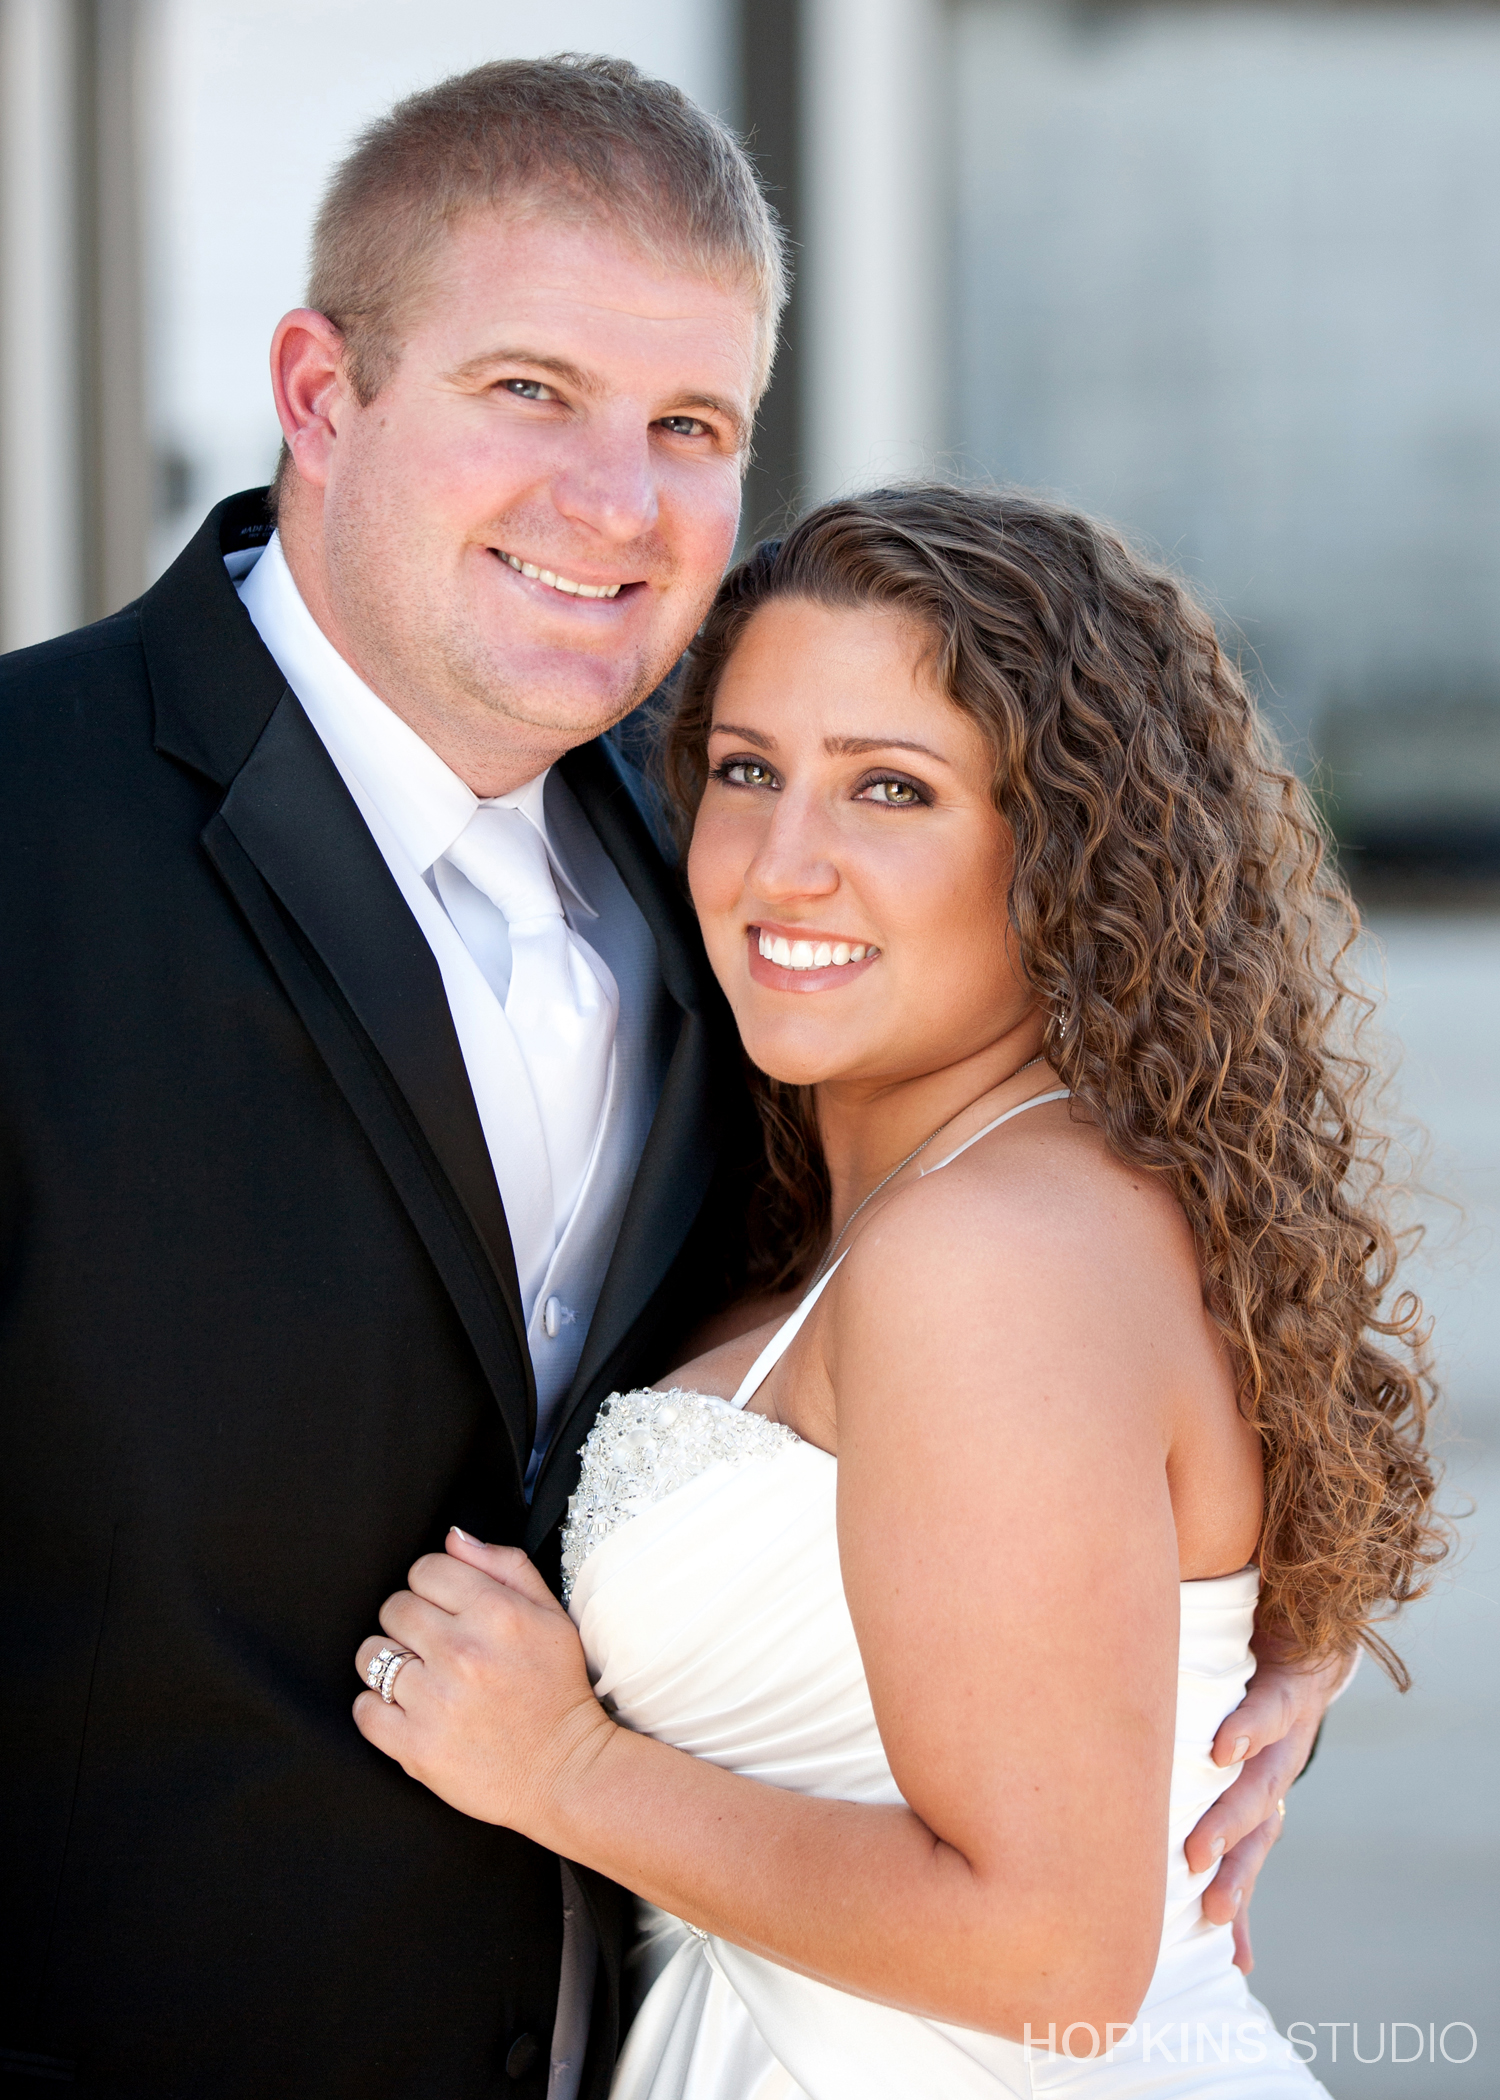 Wedding-Photography-Vineland-Center-Southwest-Michigan_27.jpg